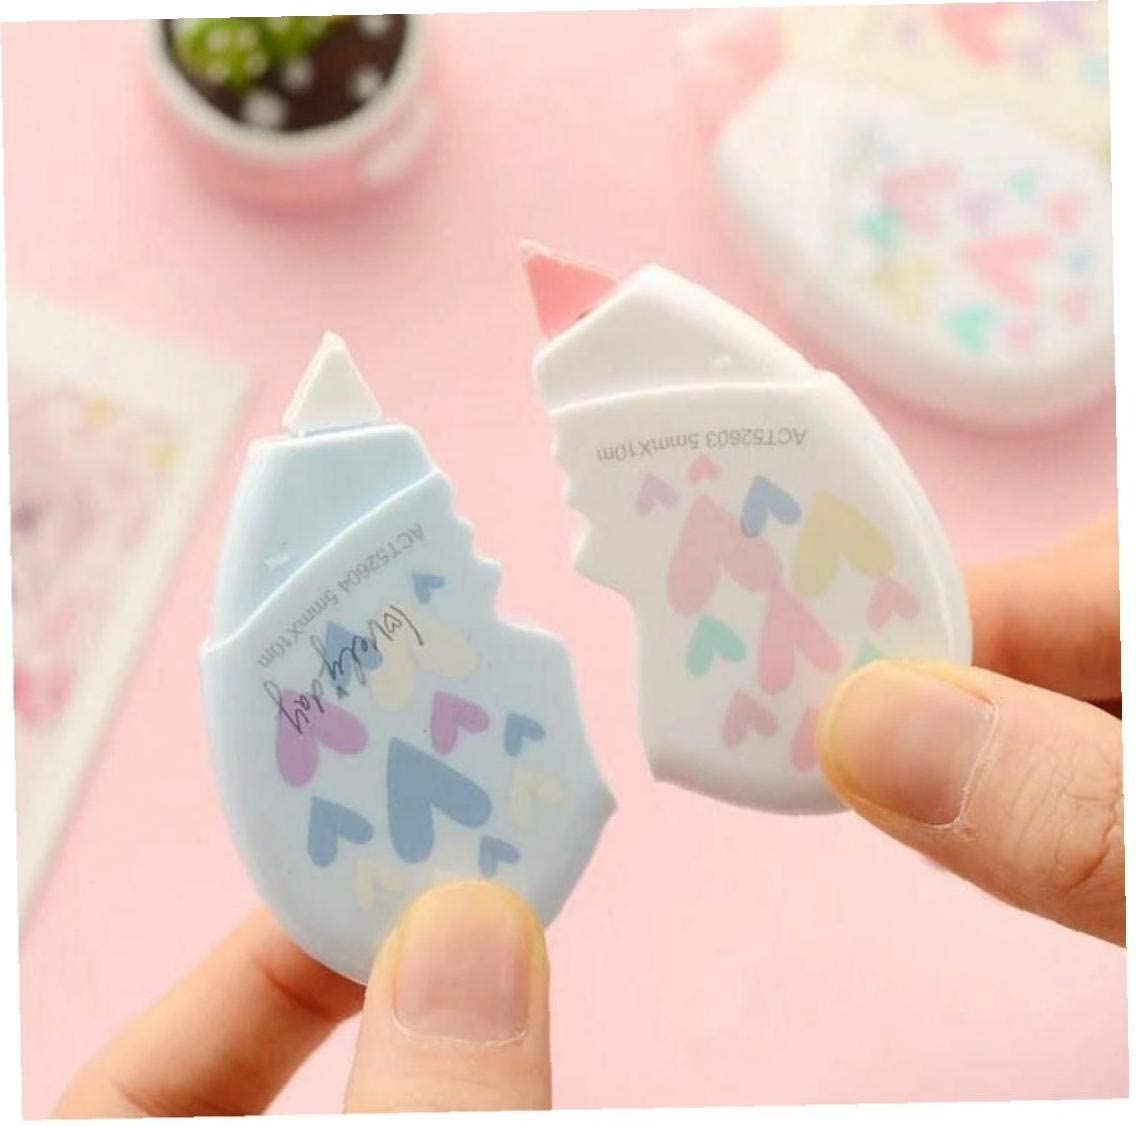 BFYRI 2 Pc-liebes-Herz-Correction Tape-Material Kawaii Stationery Office School Supplies